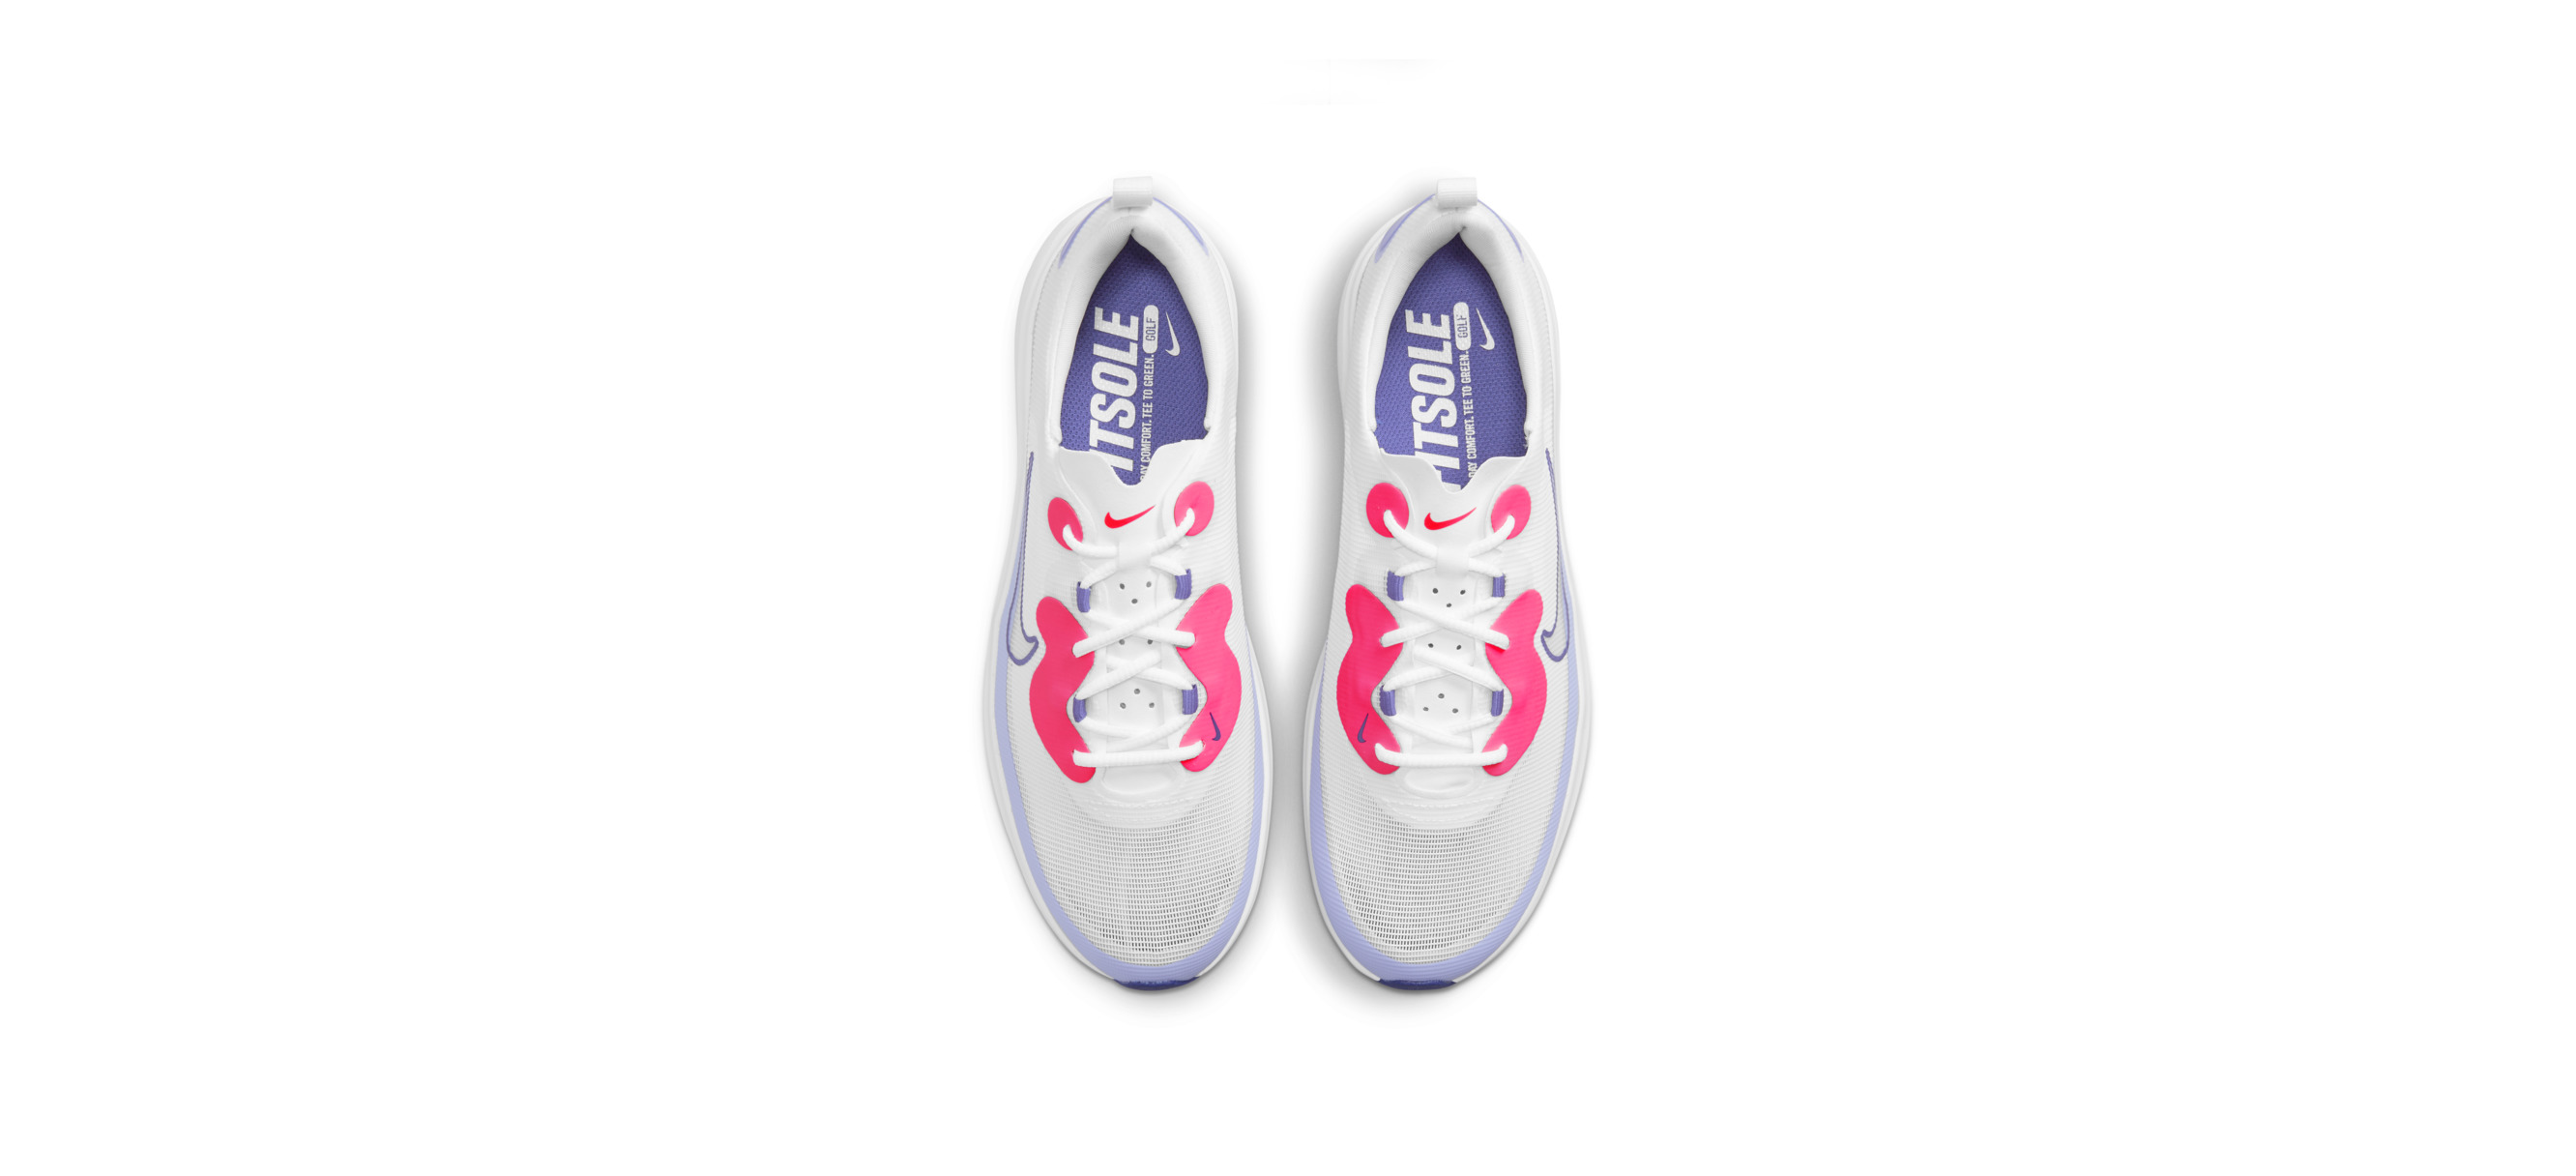 Nike Ace Summerlite White / Light Thistle / Hyper Pink / Concord